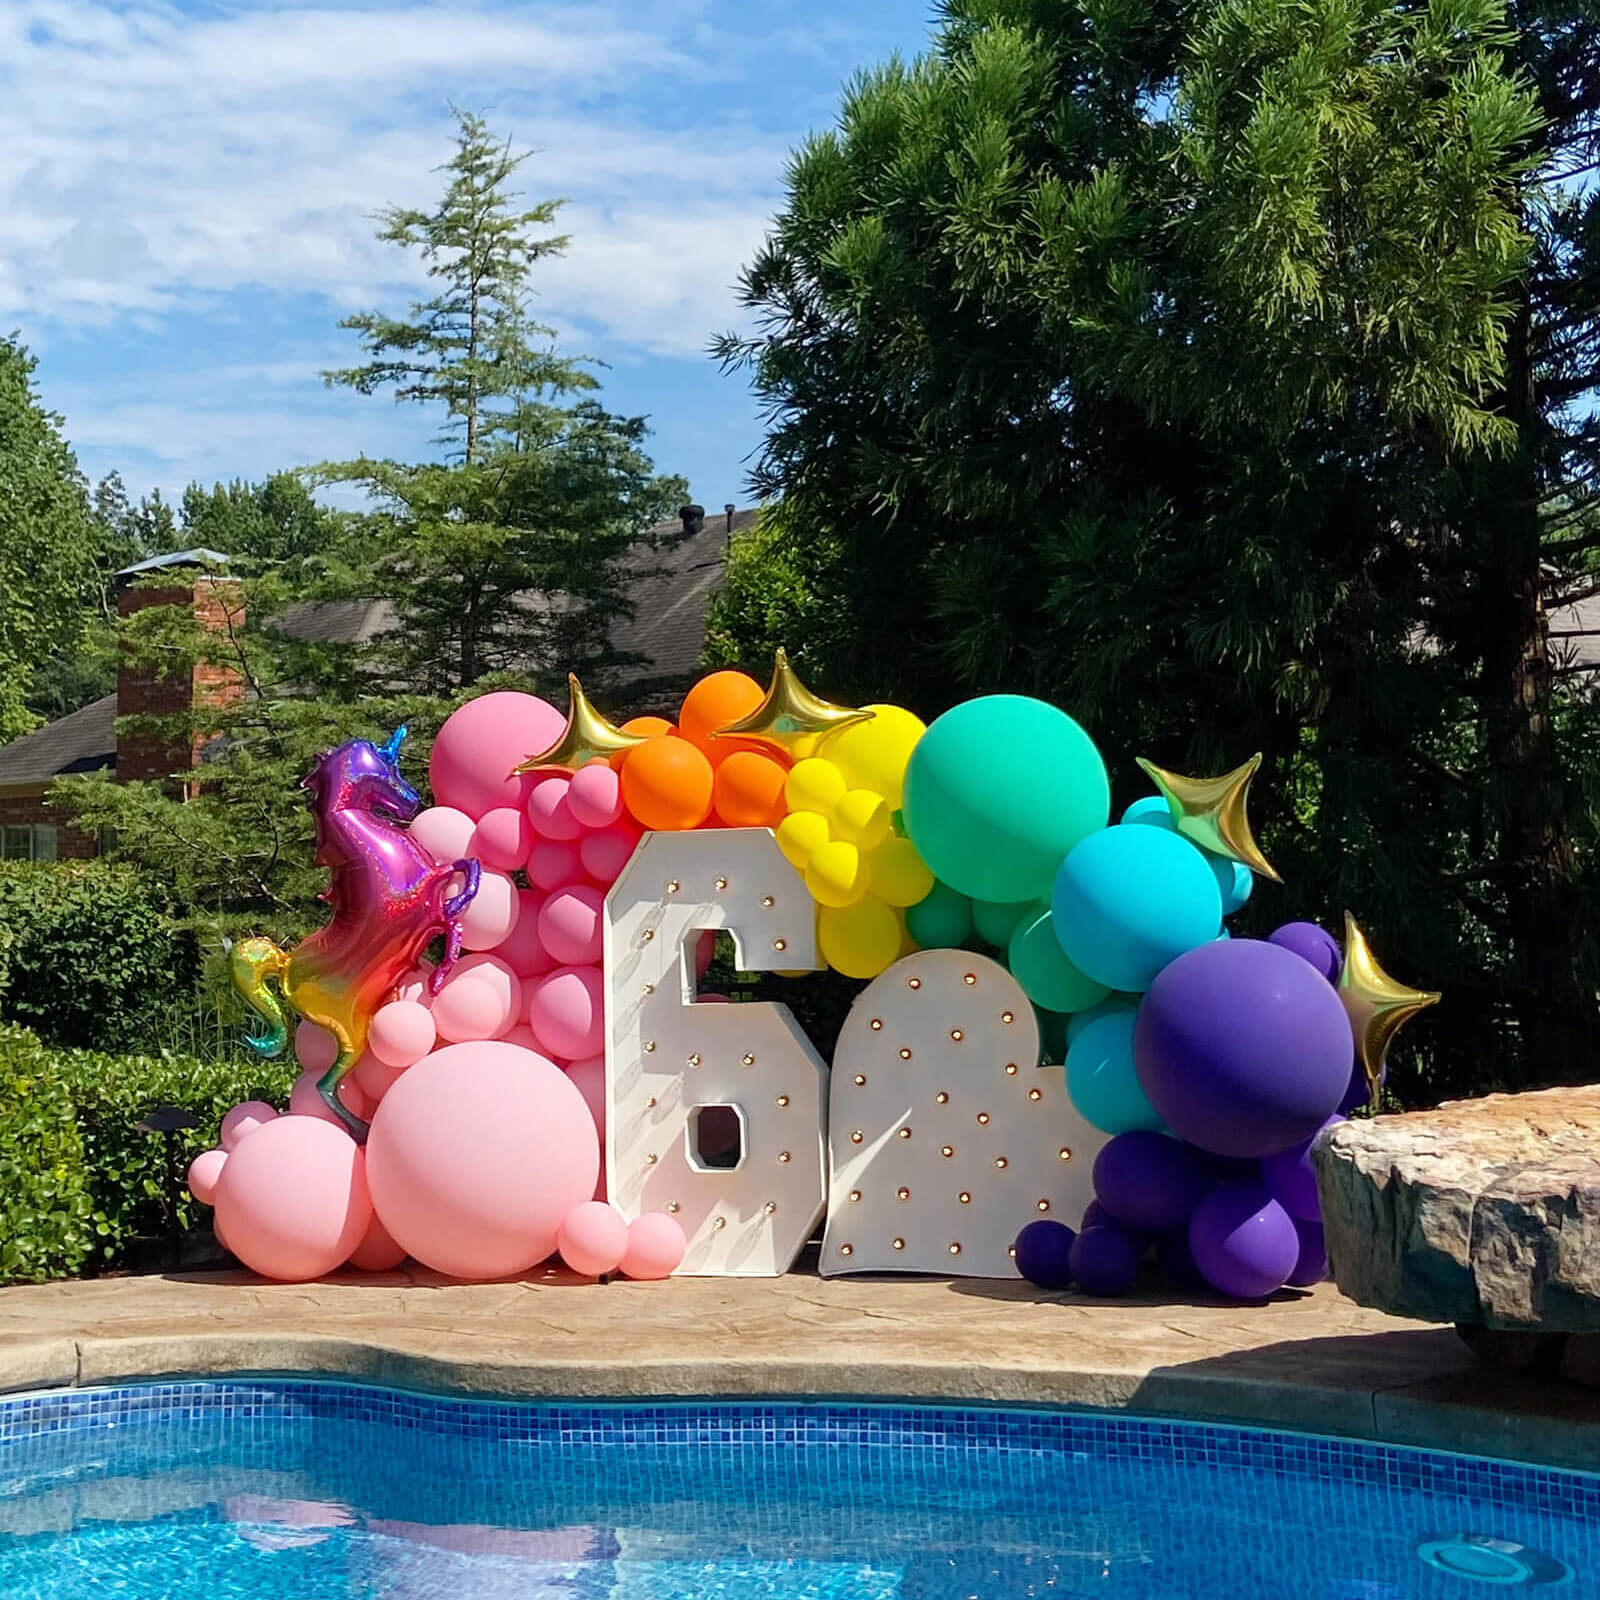 Events by the pool - we love to help with fun birthday party installs like this.